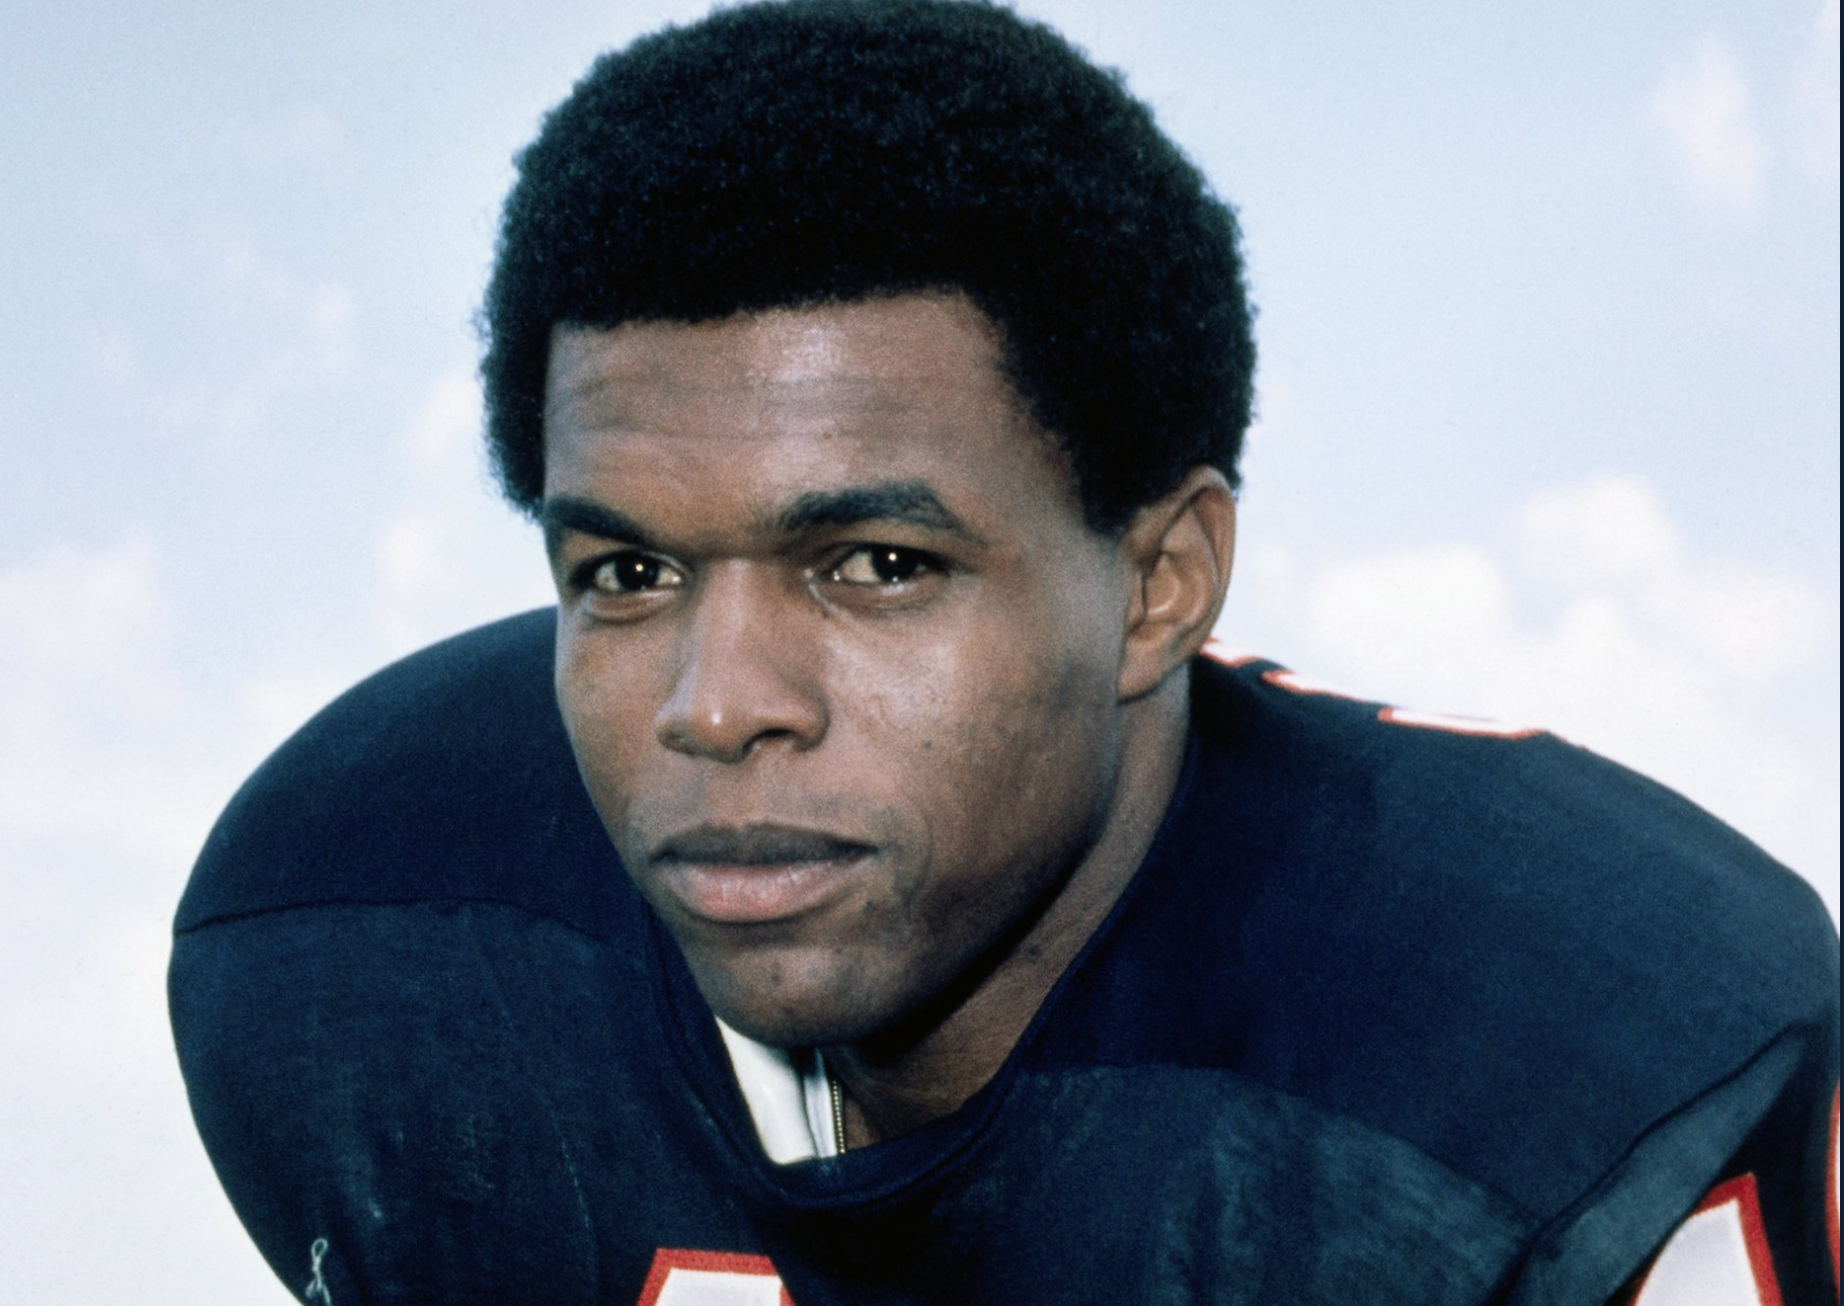 Your Daily Cartoon: Paying tribute to Gale Sayers